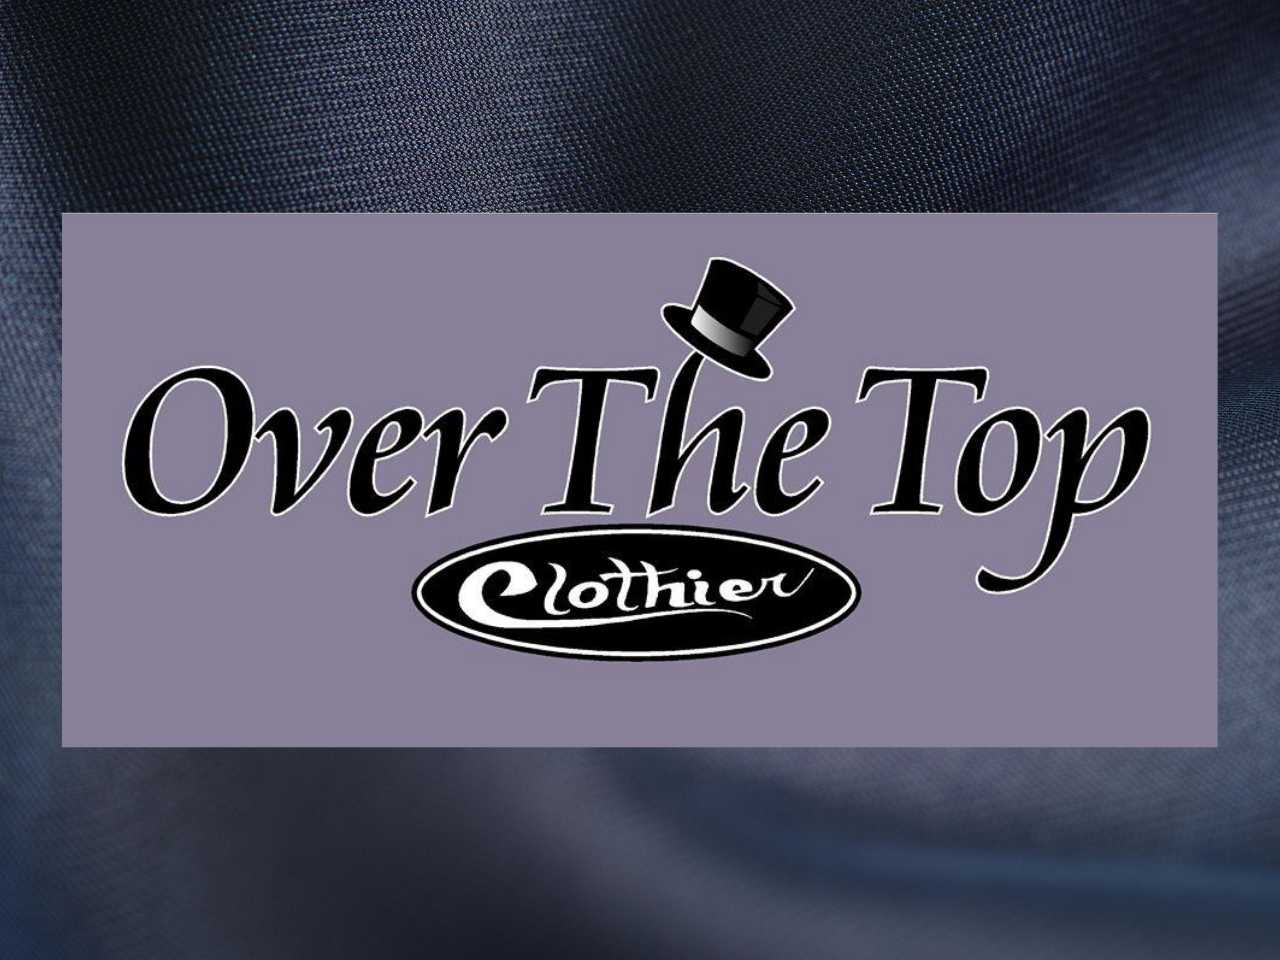 Over the Top Clothier